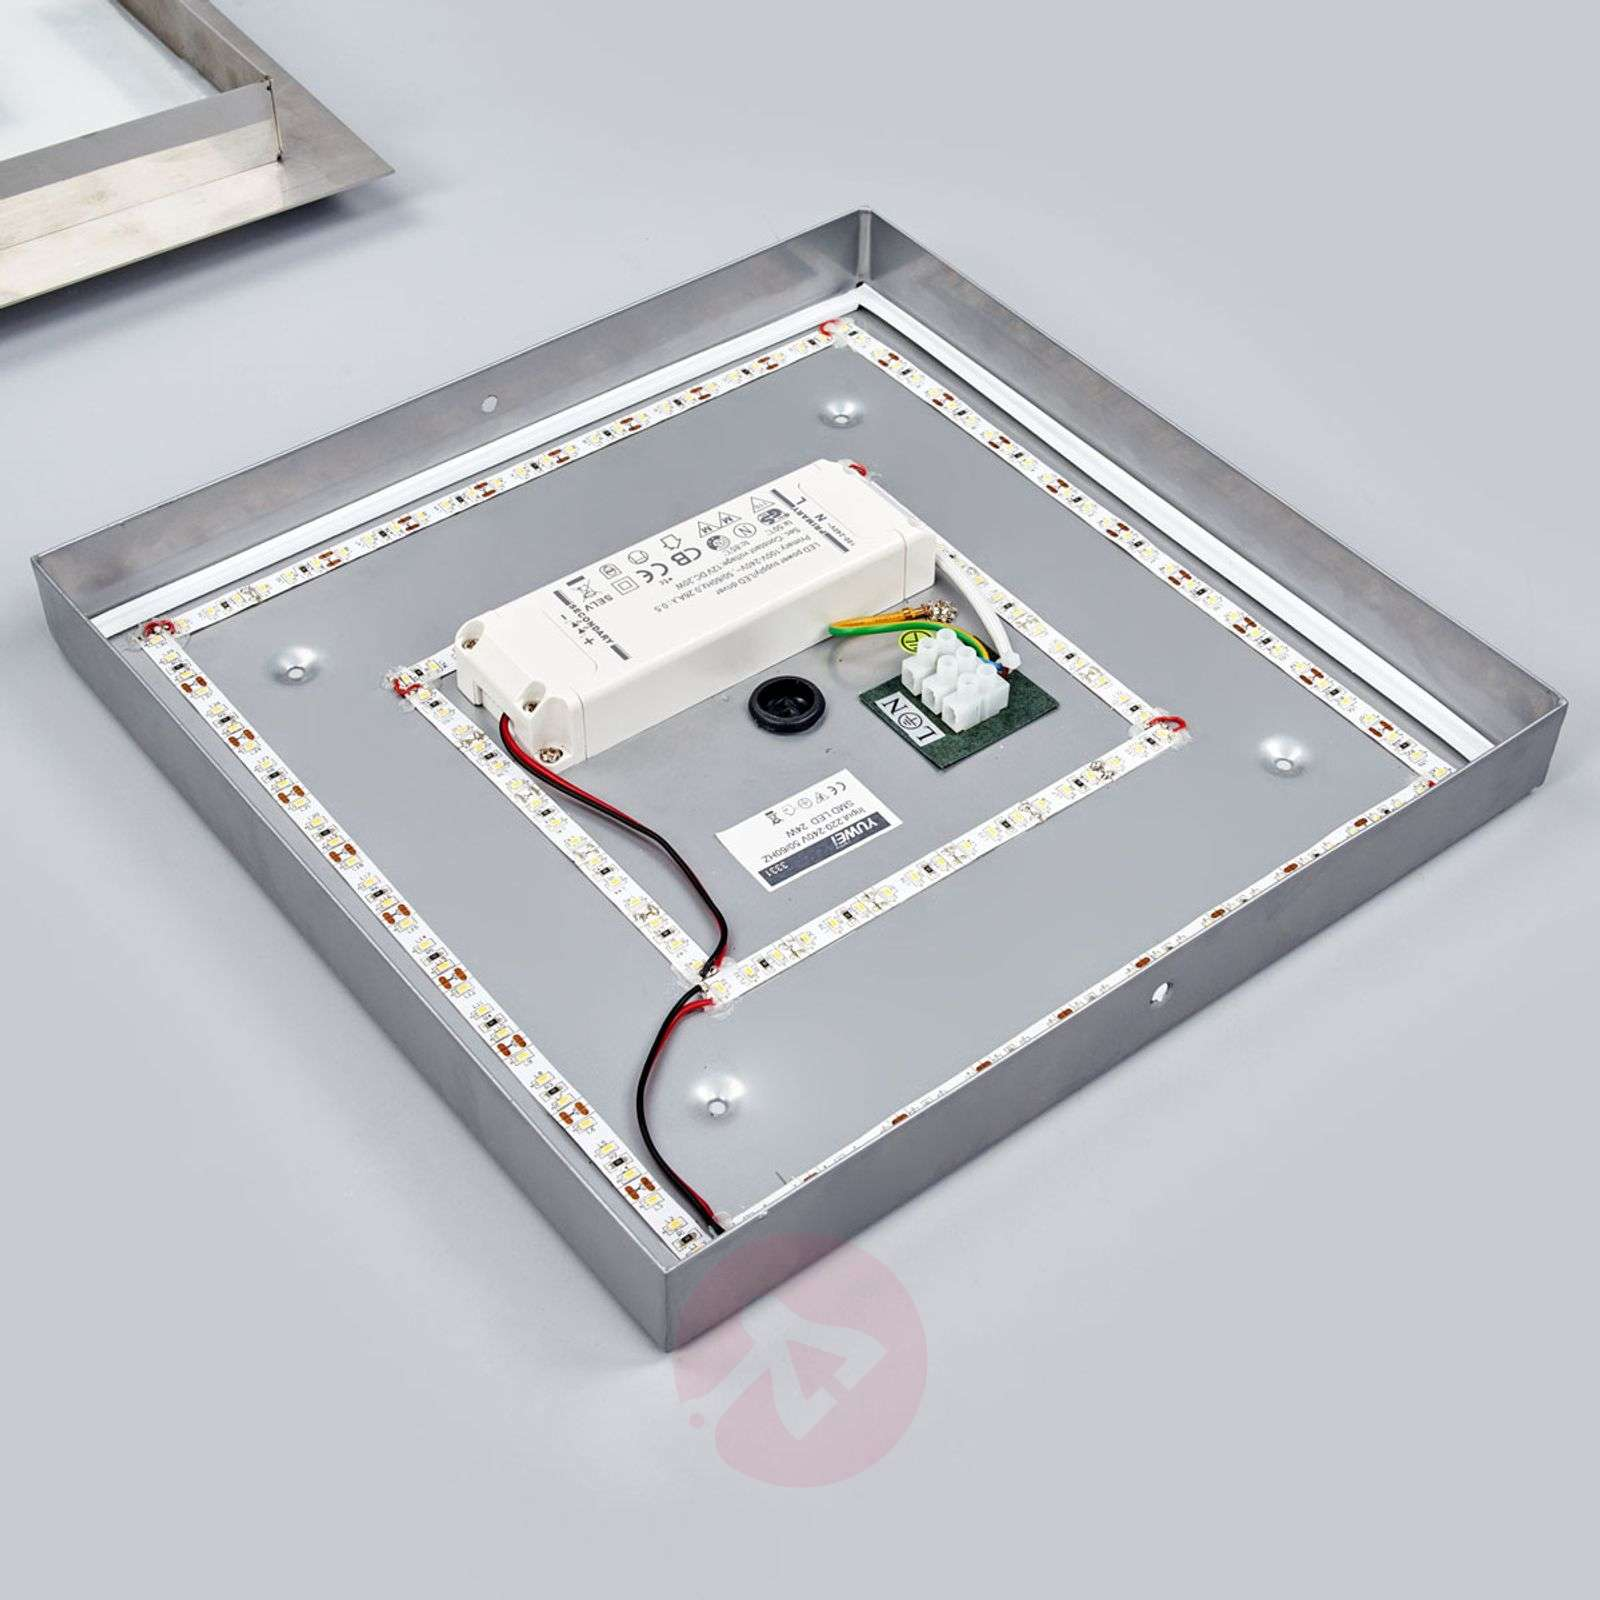 4-bulb LED bathroom ceiling light Marija-9641072-02